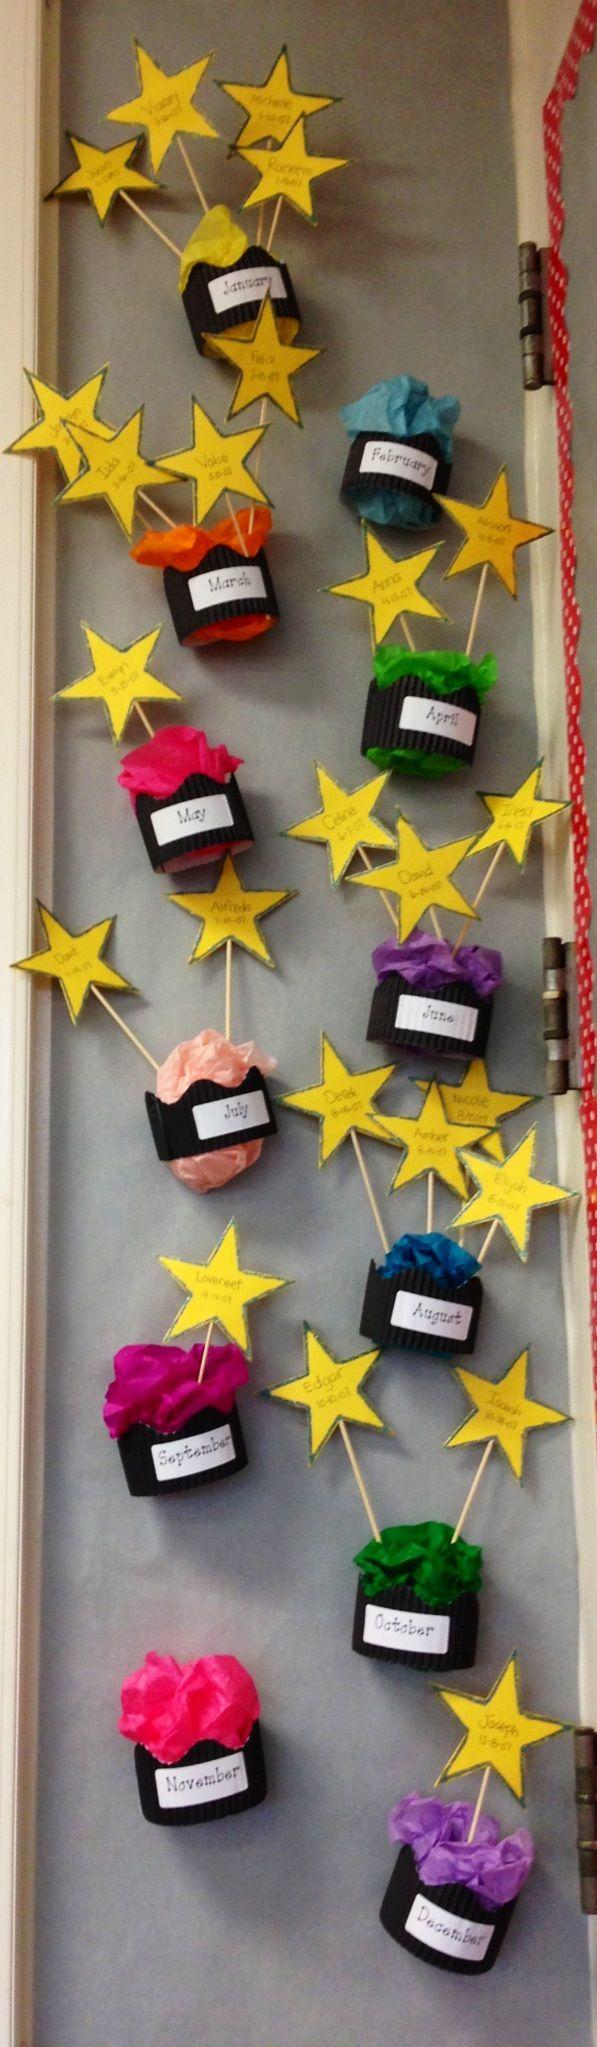 Innovative Birthday Charts For Classroom : Birthday cupcakes classroom chart school ideas